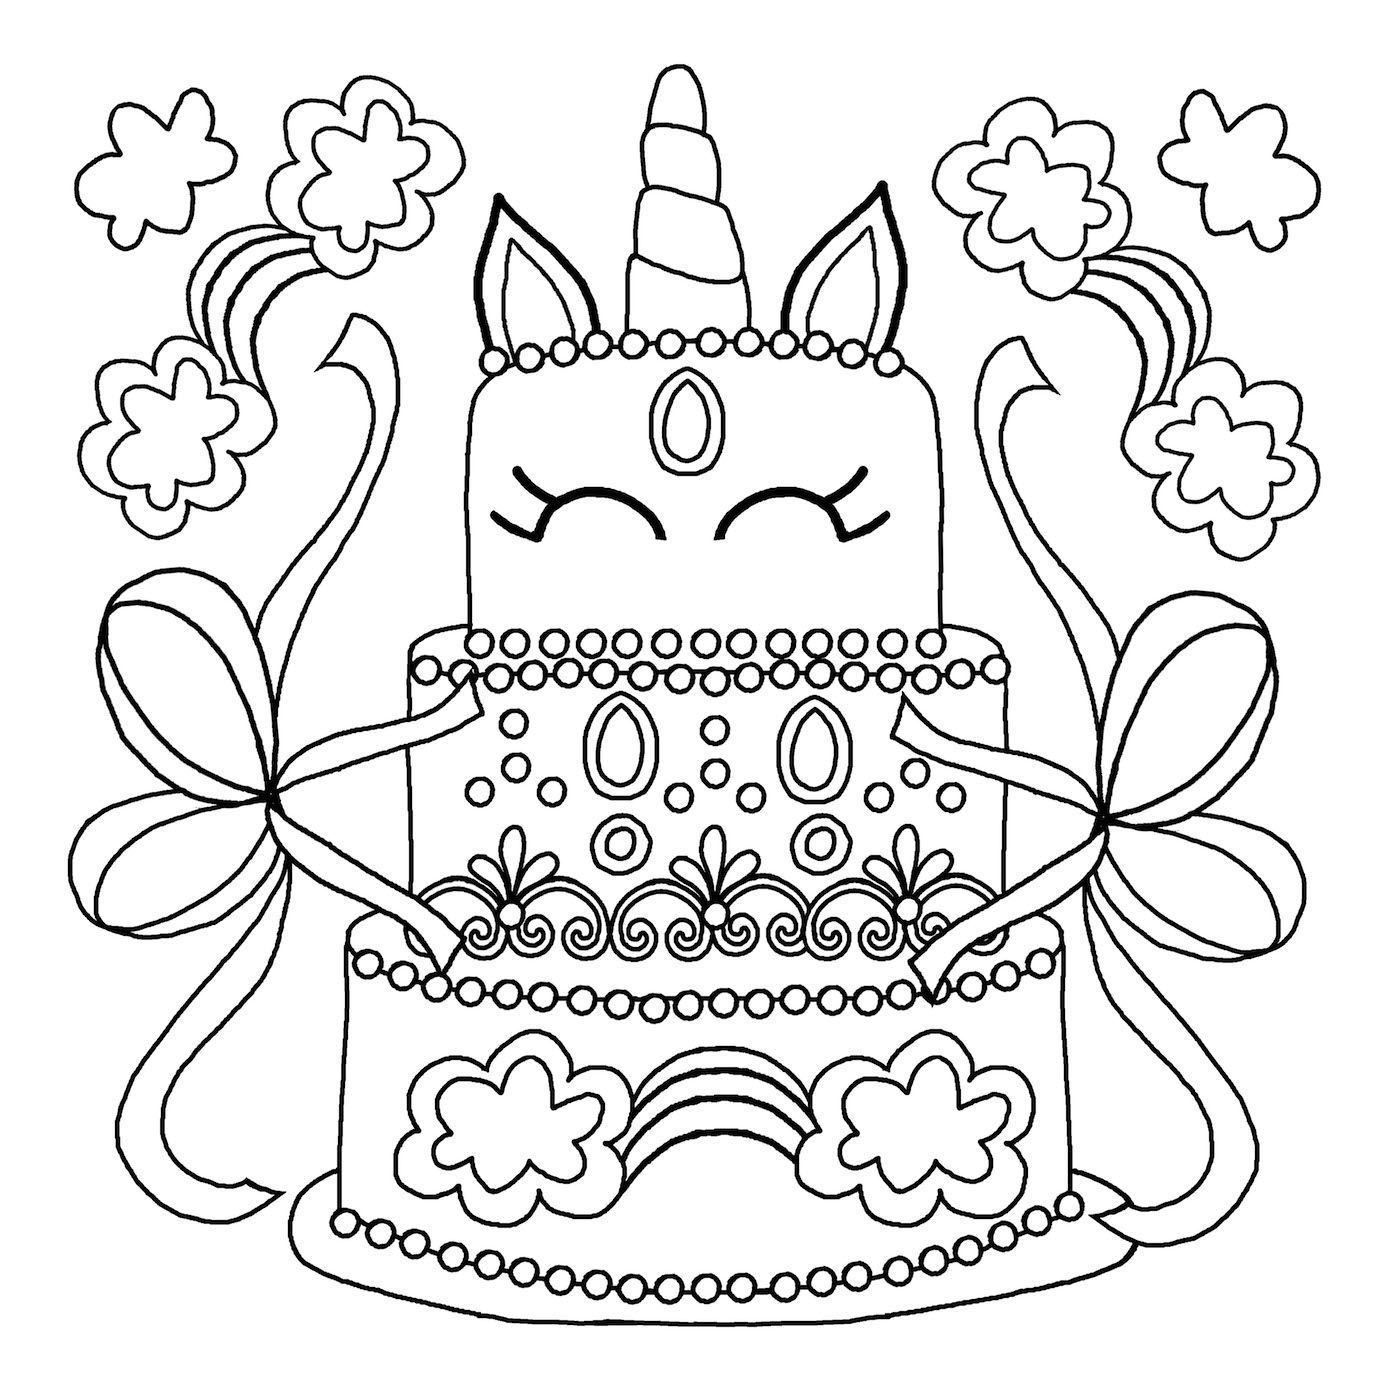 Printable Unicorn Coloring Pages Ideas For Kids Unicorn